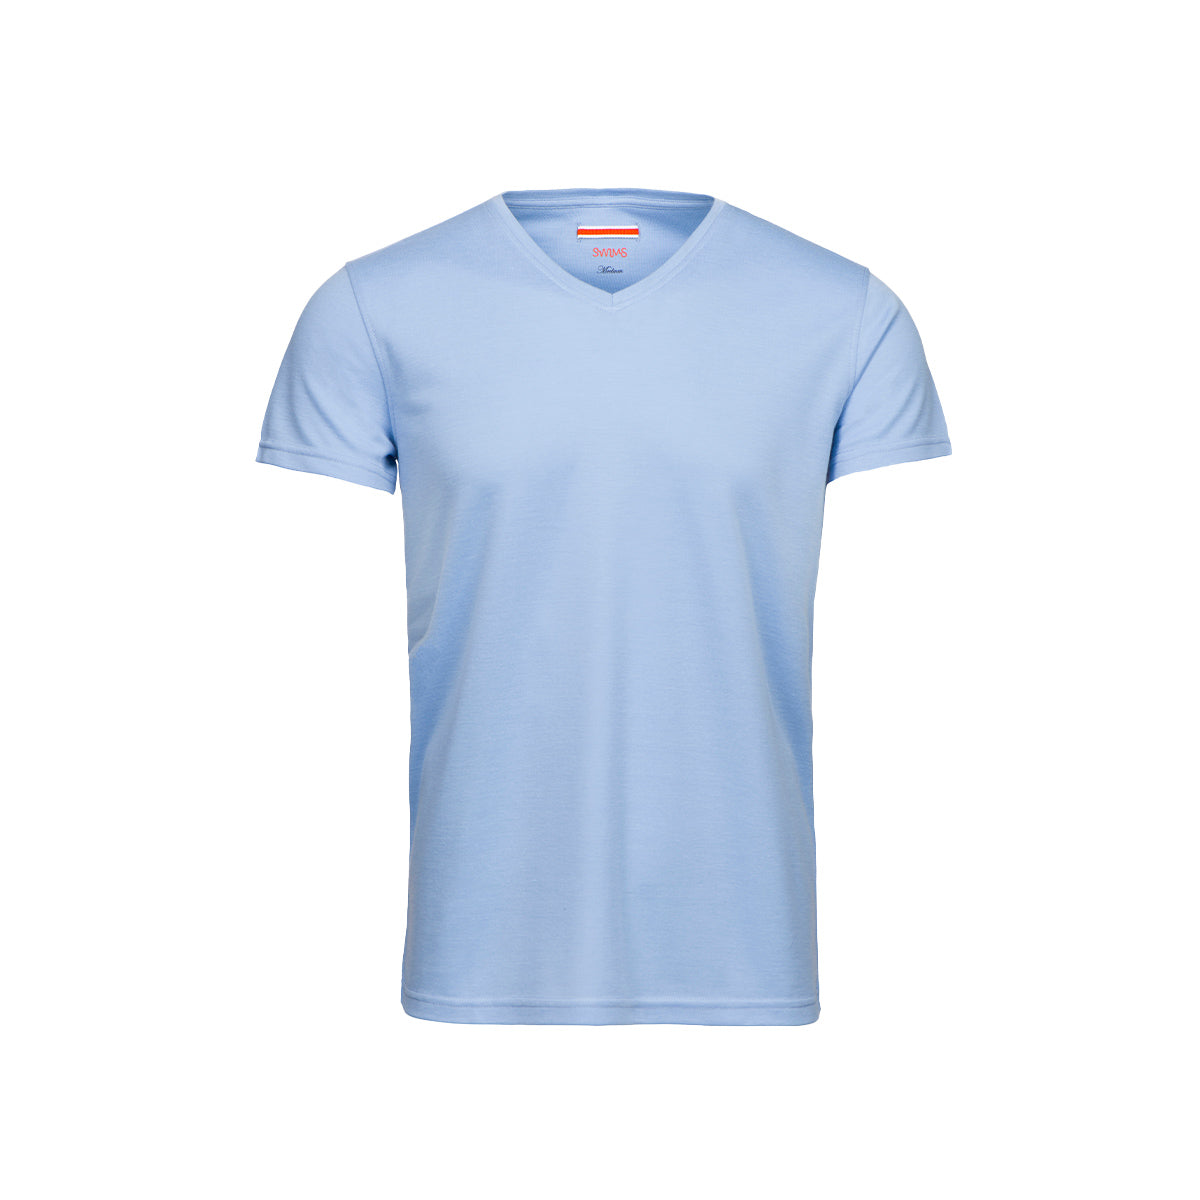 Citara V Neck T-Shirt - background::white,variant:sky